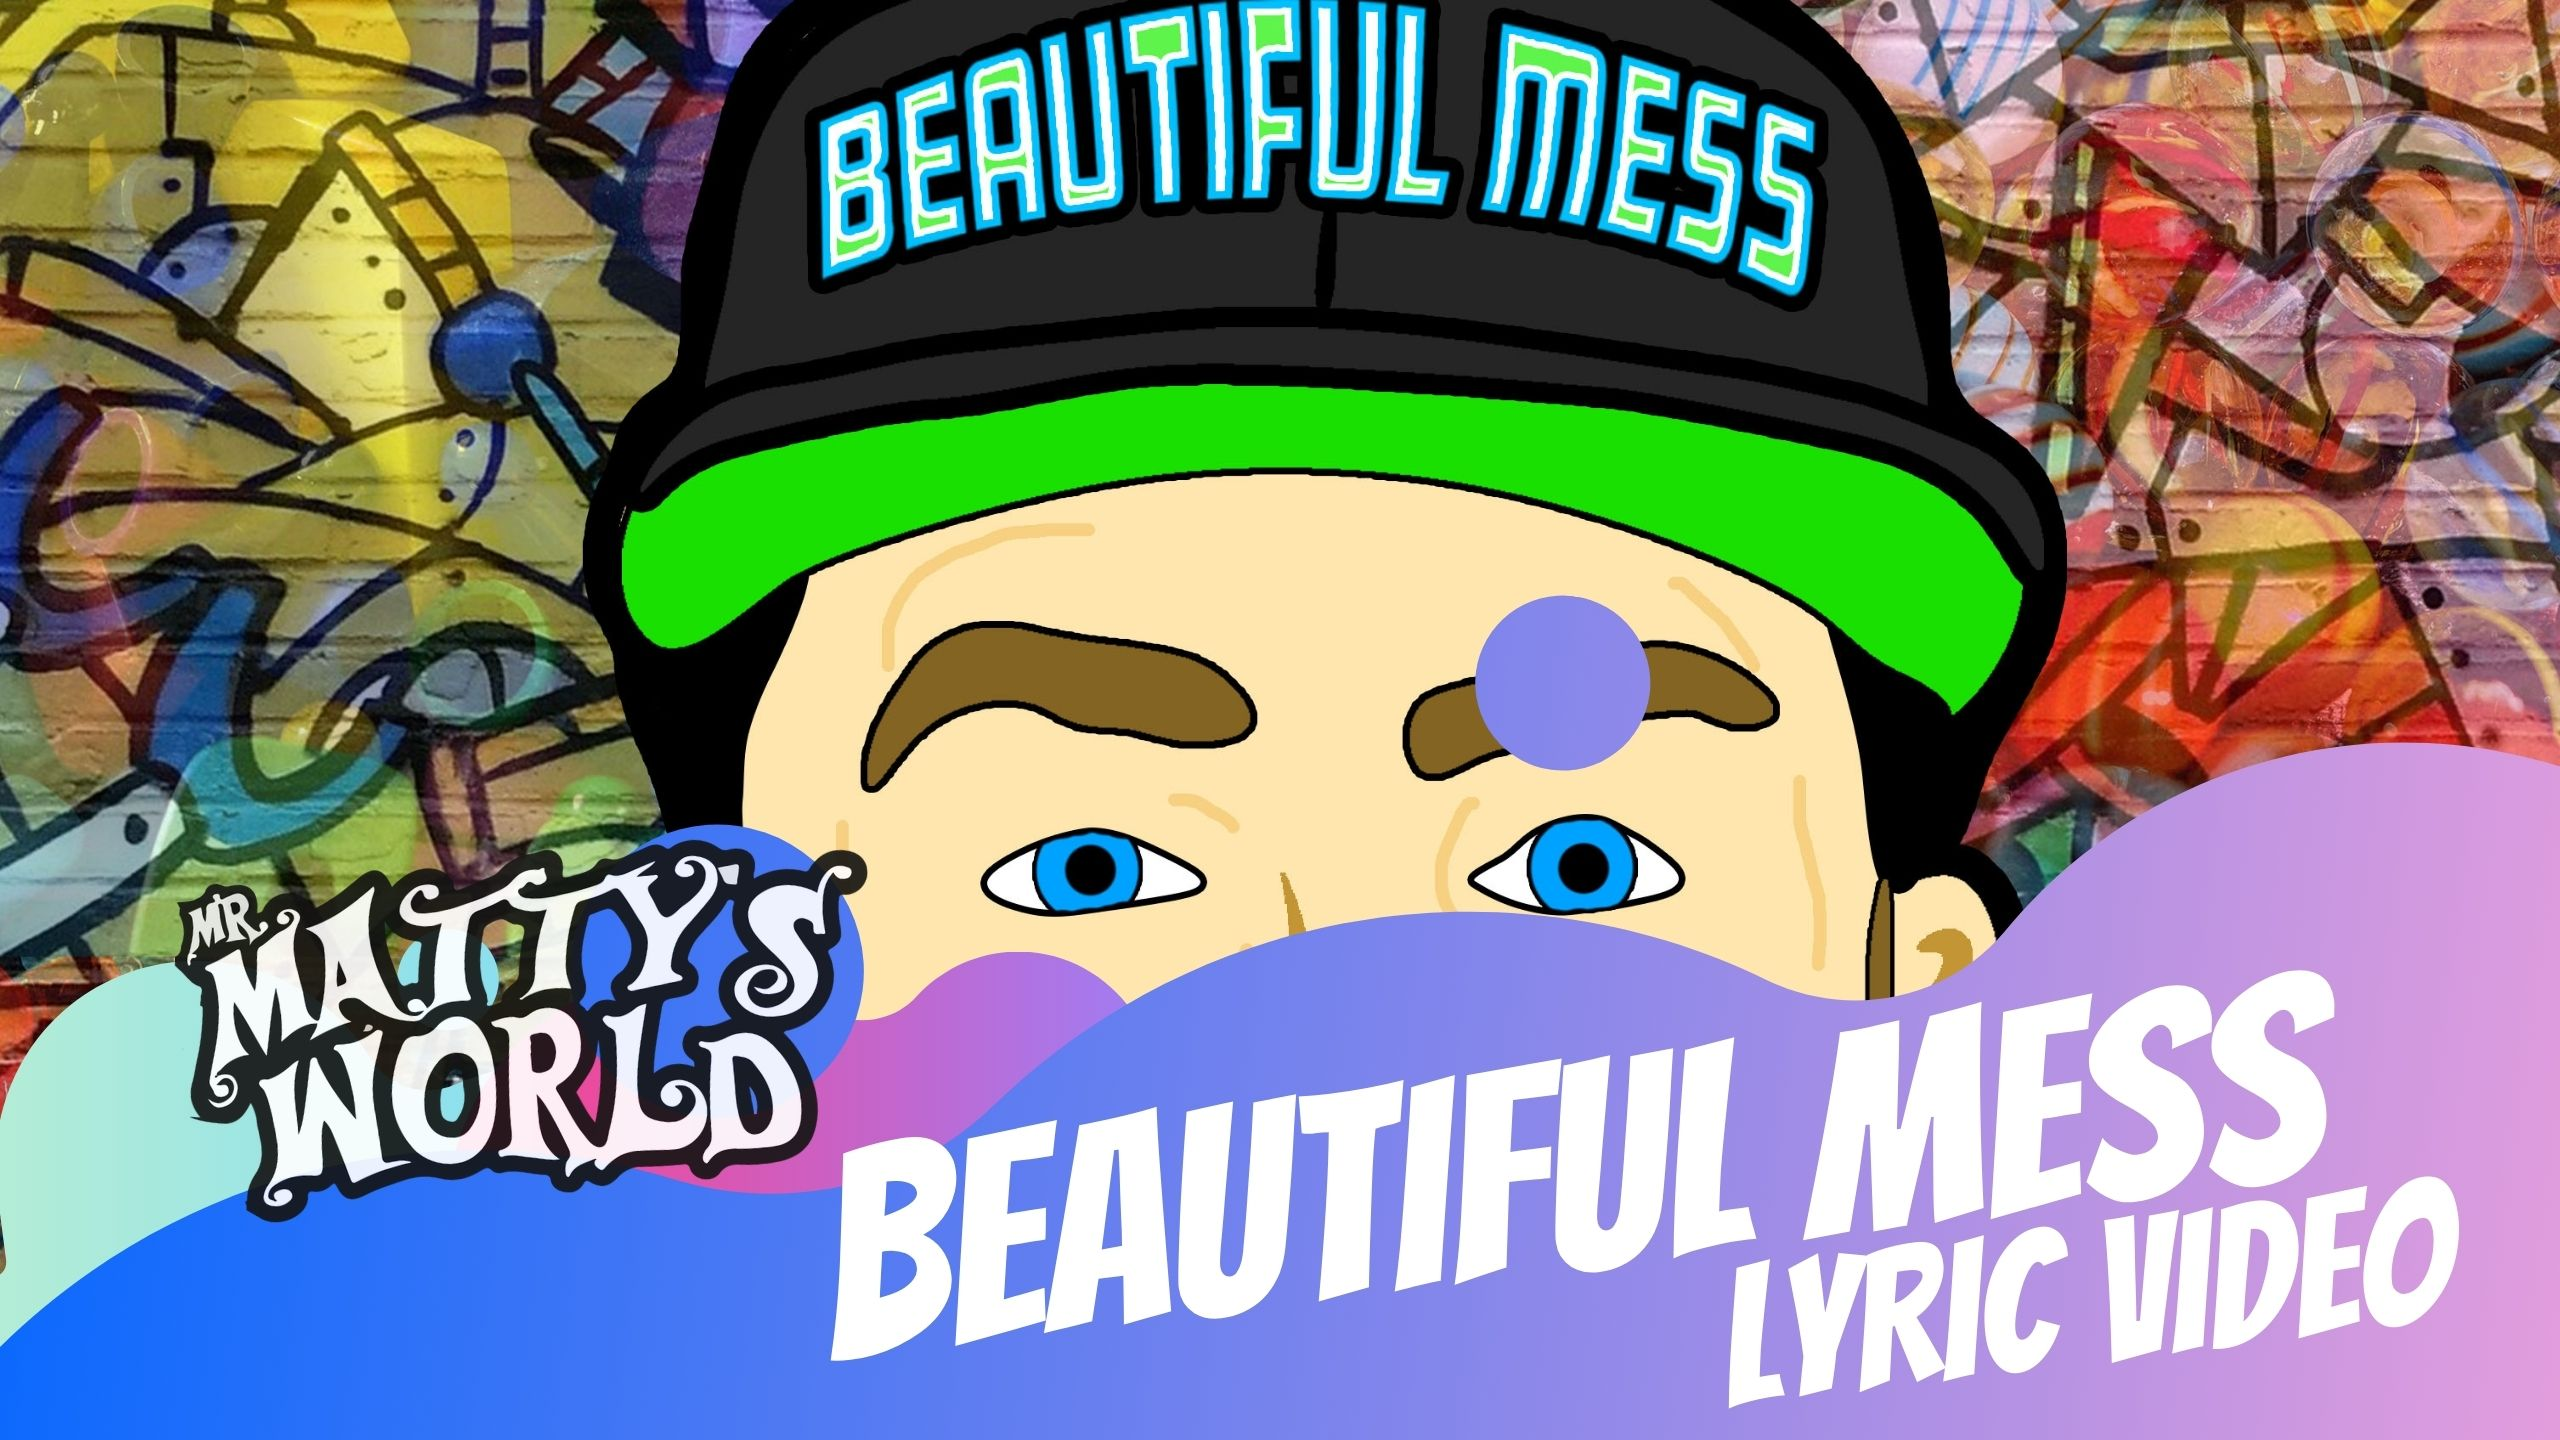 BEAUTIFUL MESS BANNER